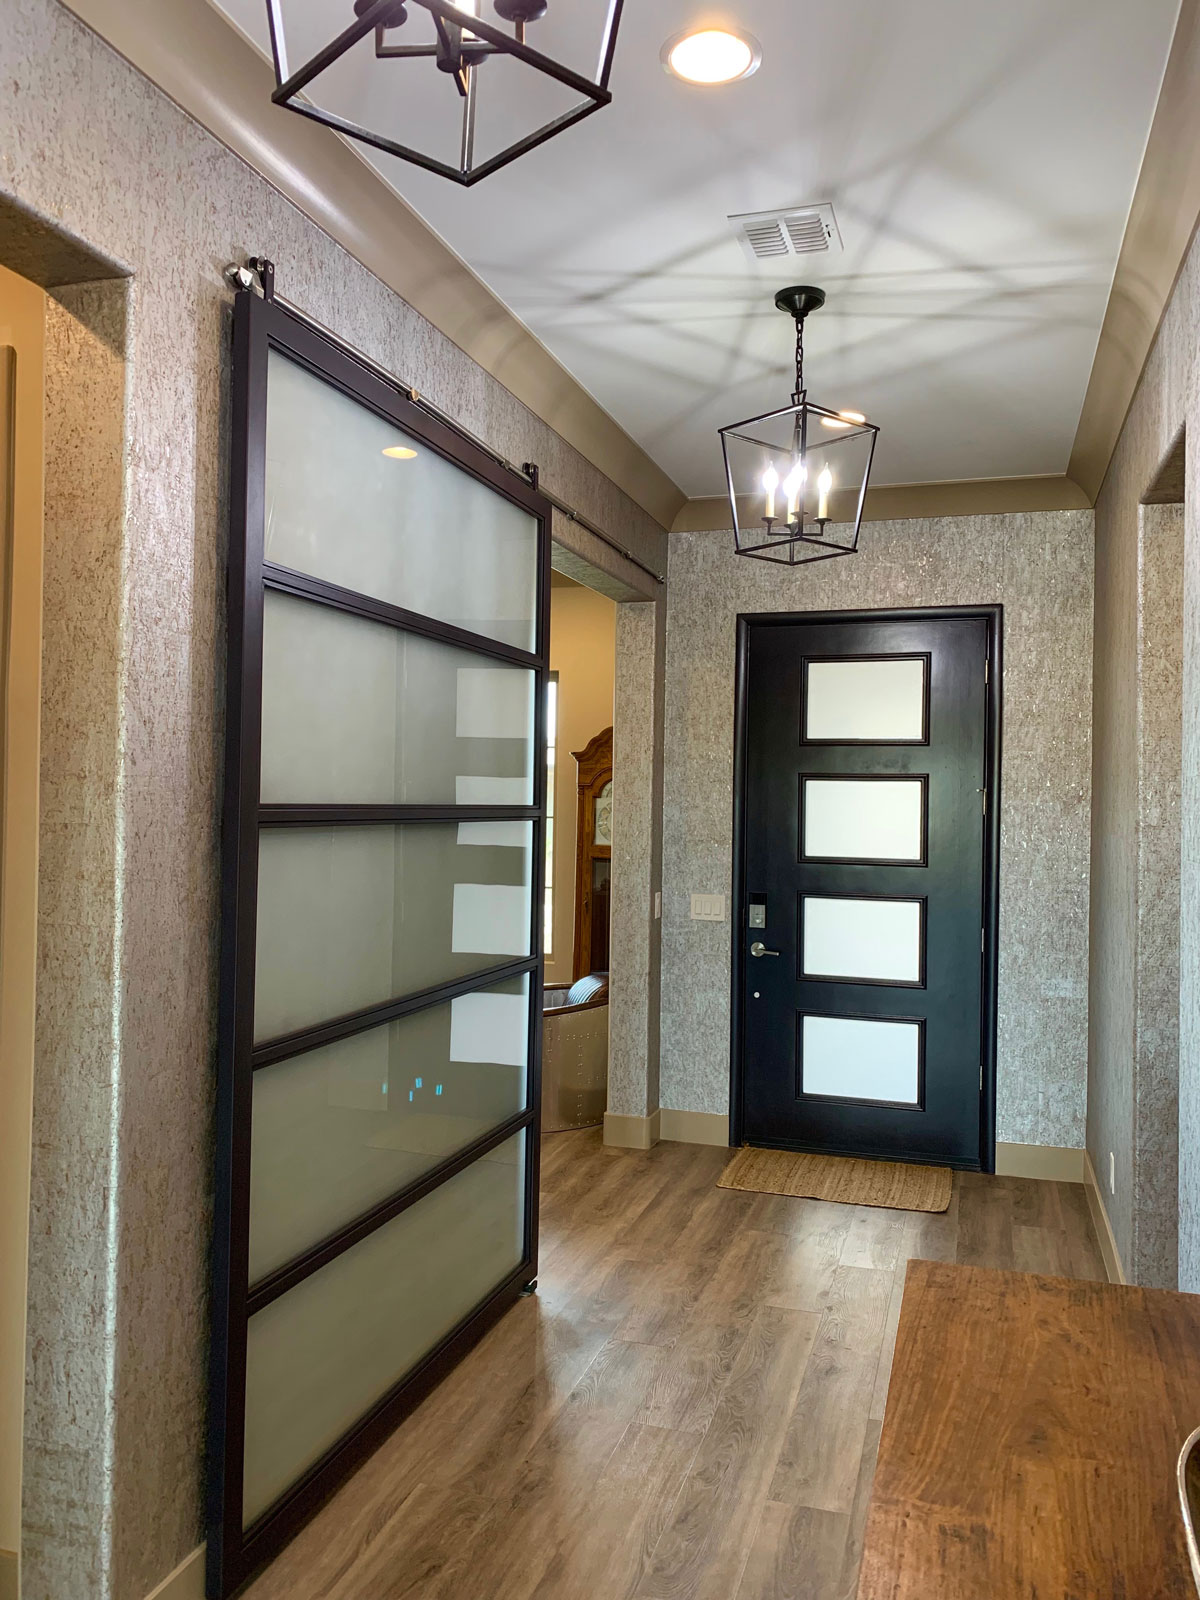 satin glass and metal barn door with stainless steel hardware